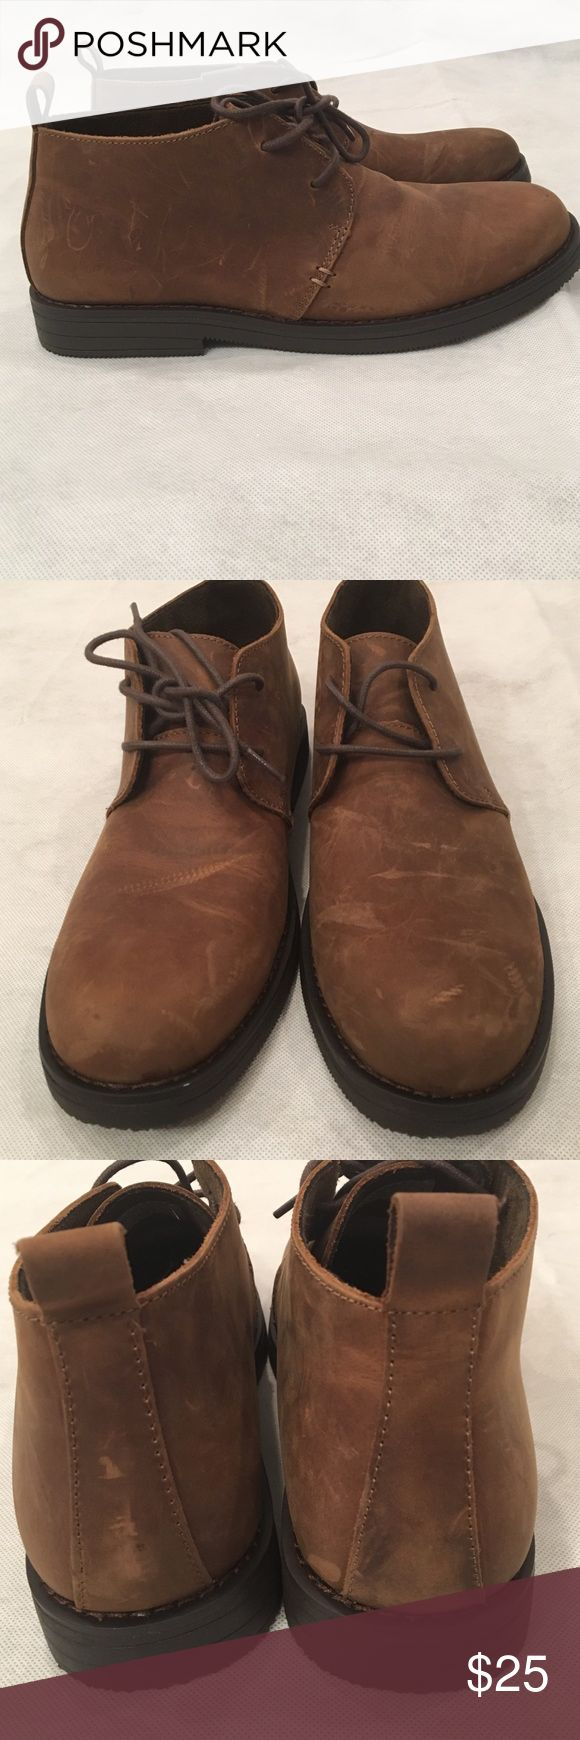 NWOT men's brown chukka boot NWOT. Never been worn. They are in perfect condition and are very stylish Shoes Chukka Boots